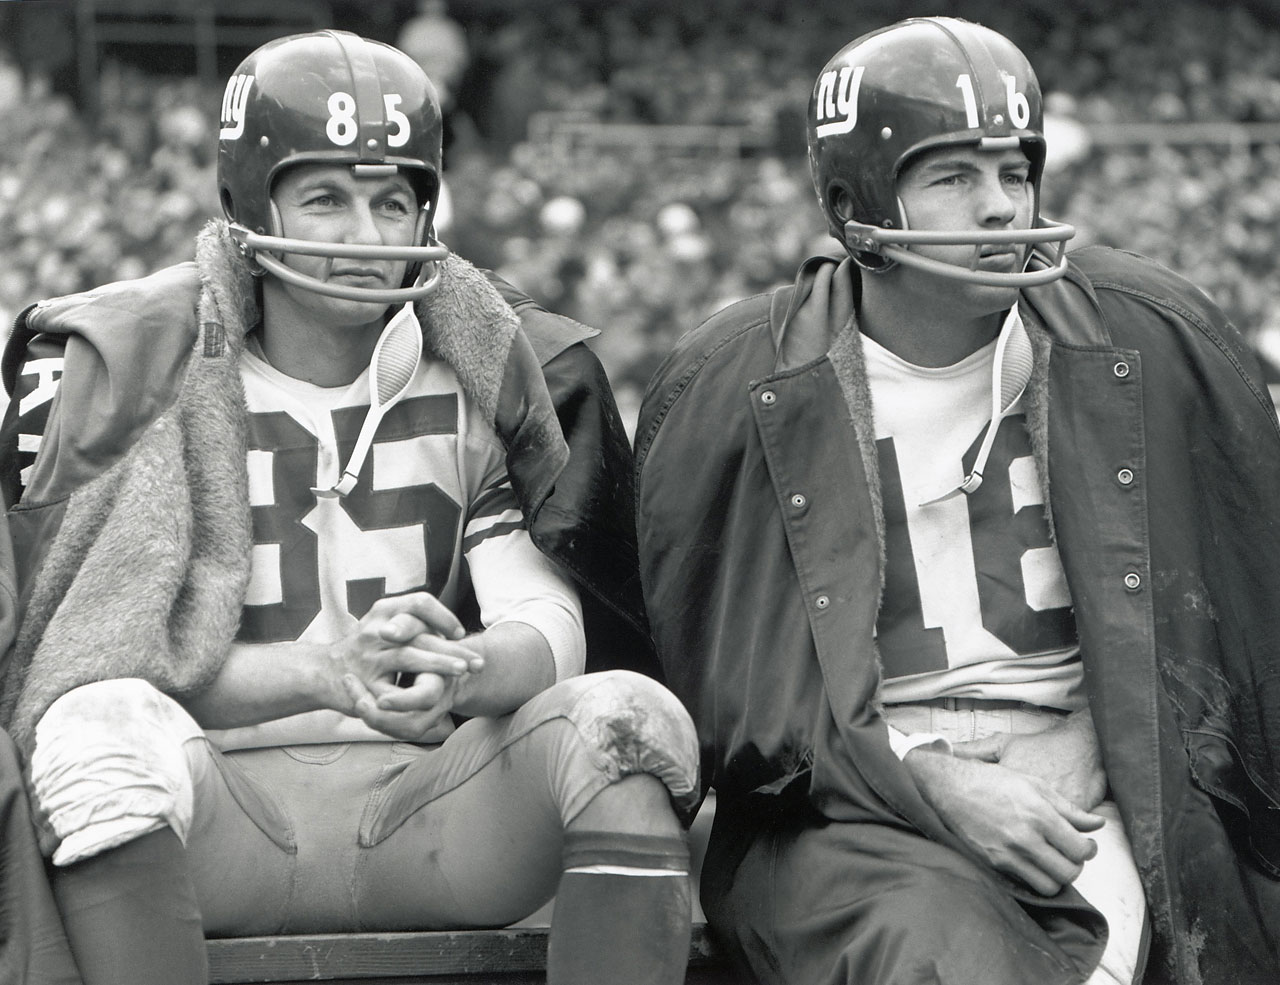 Del Shofnel, left, and Frank Gifford of the New York Giants sit on the bench during a game, circa 1962-64.